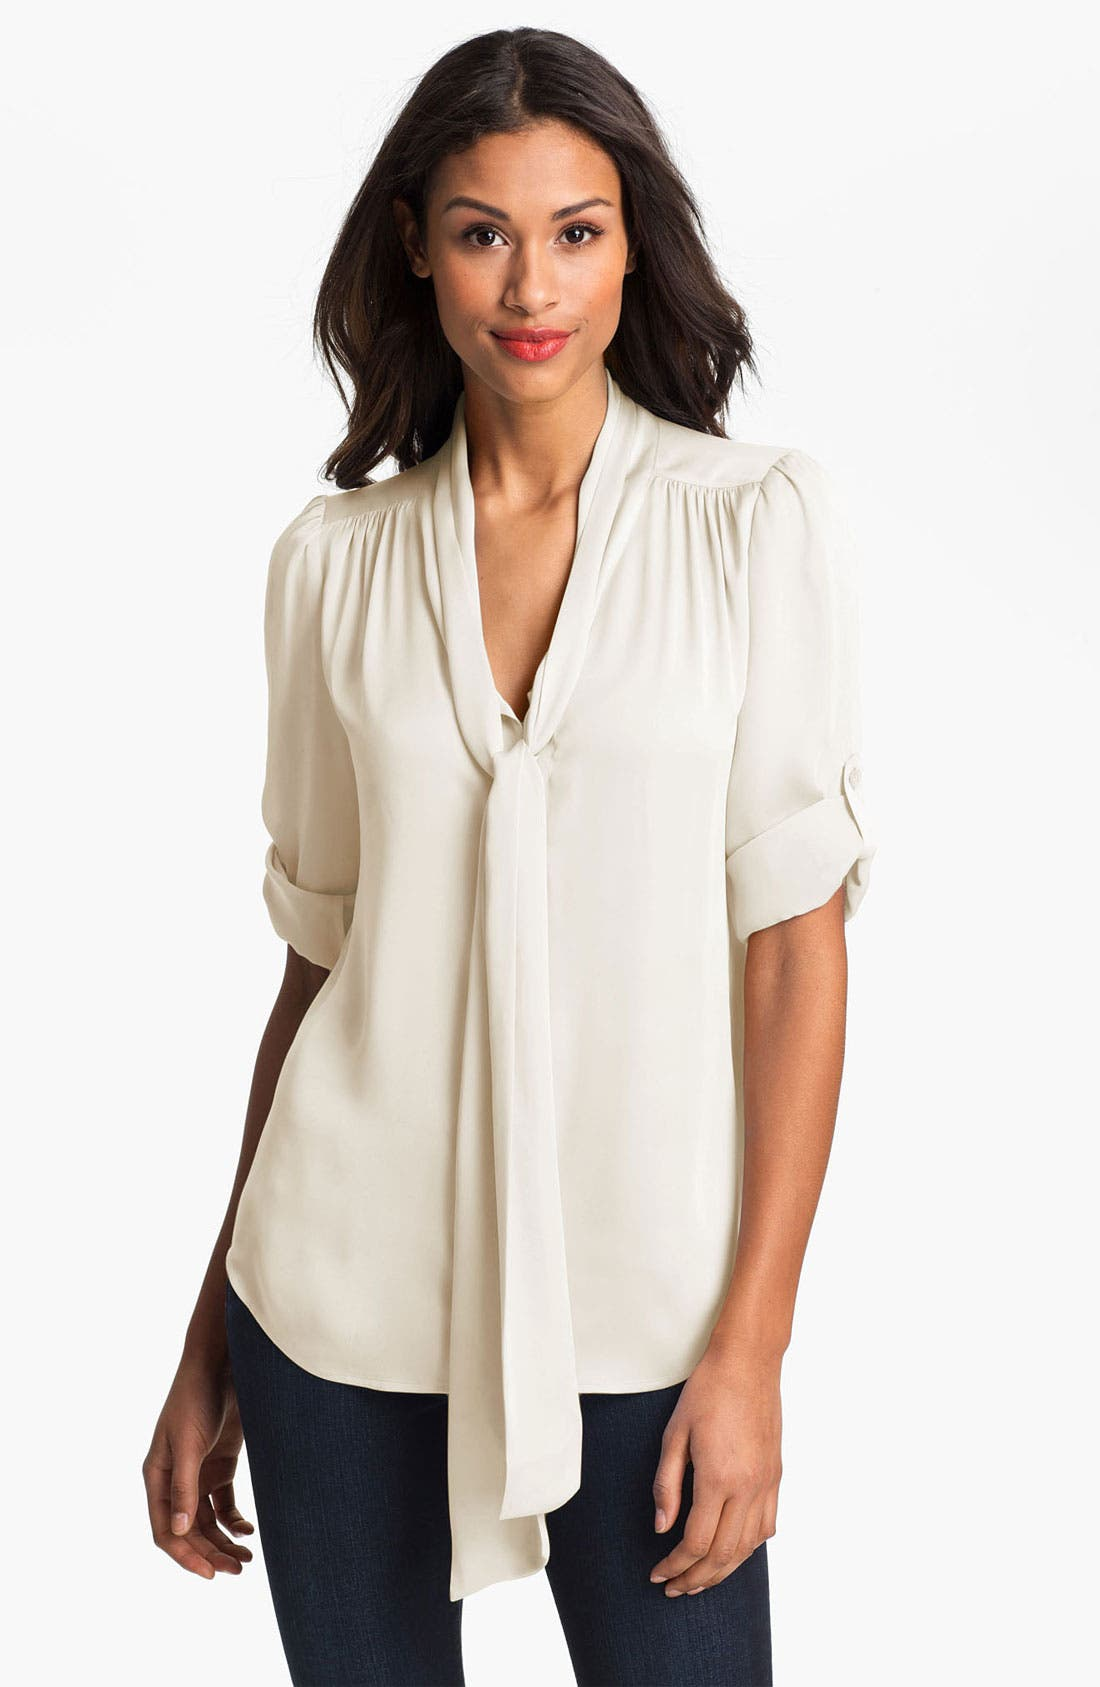 Alternate Image 1 Selected - Vince Camuto Tie Neck Blouse